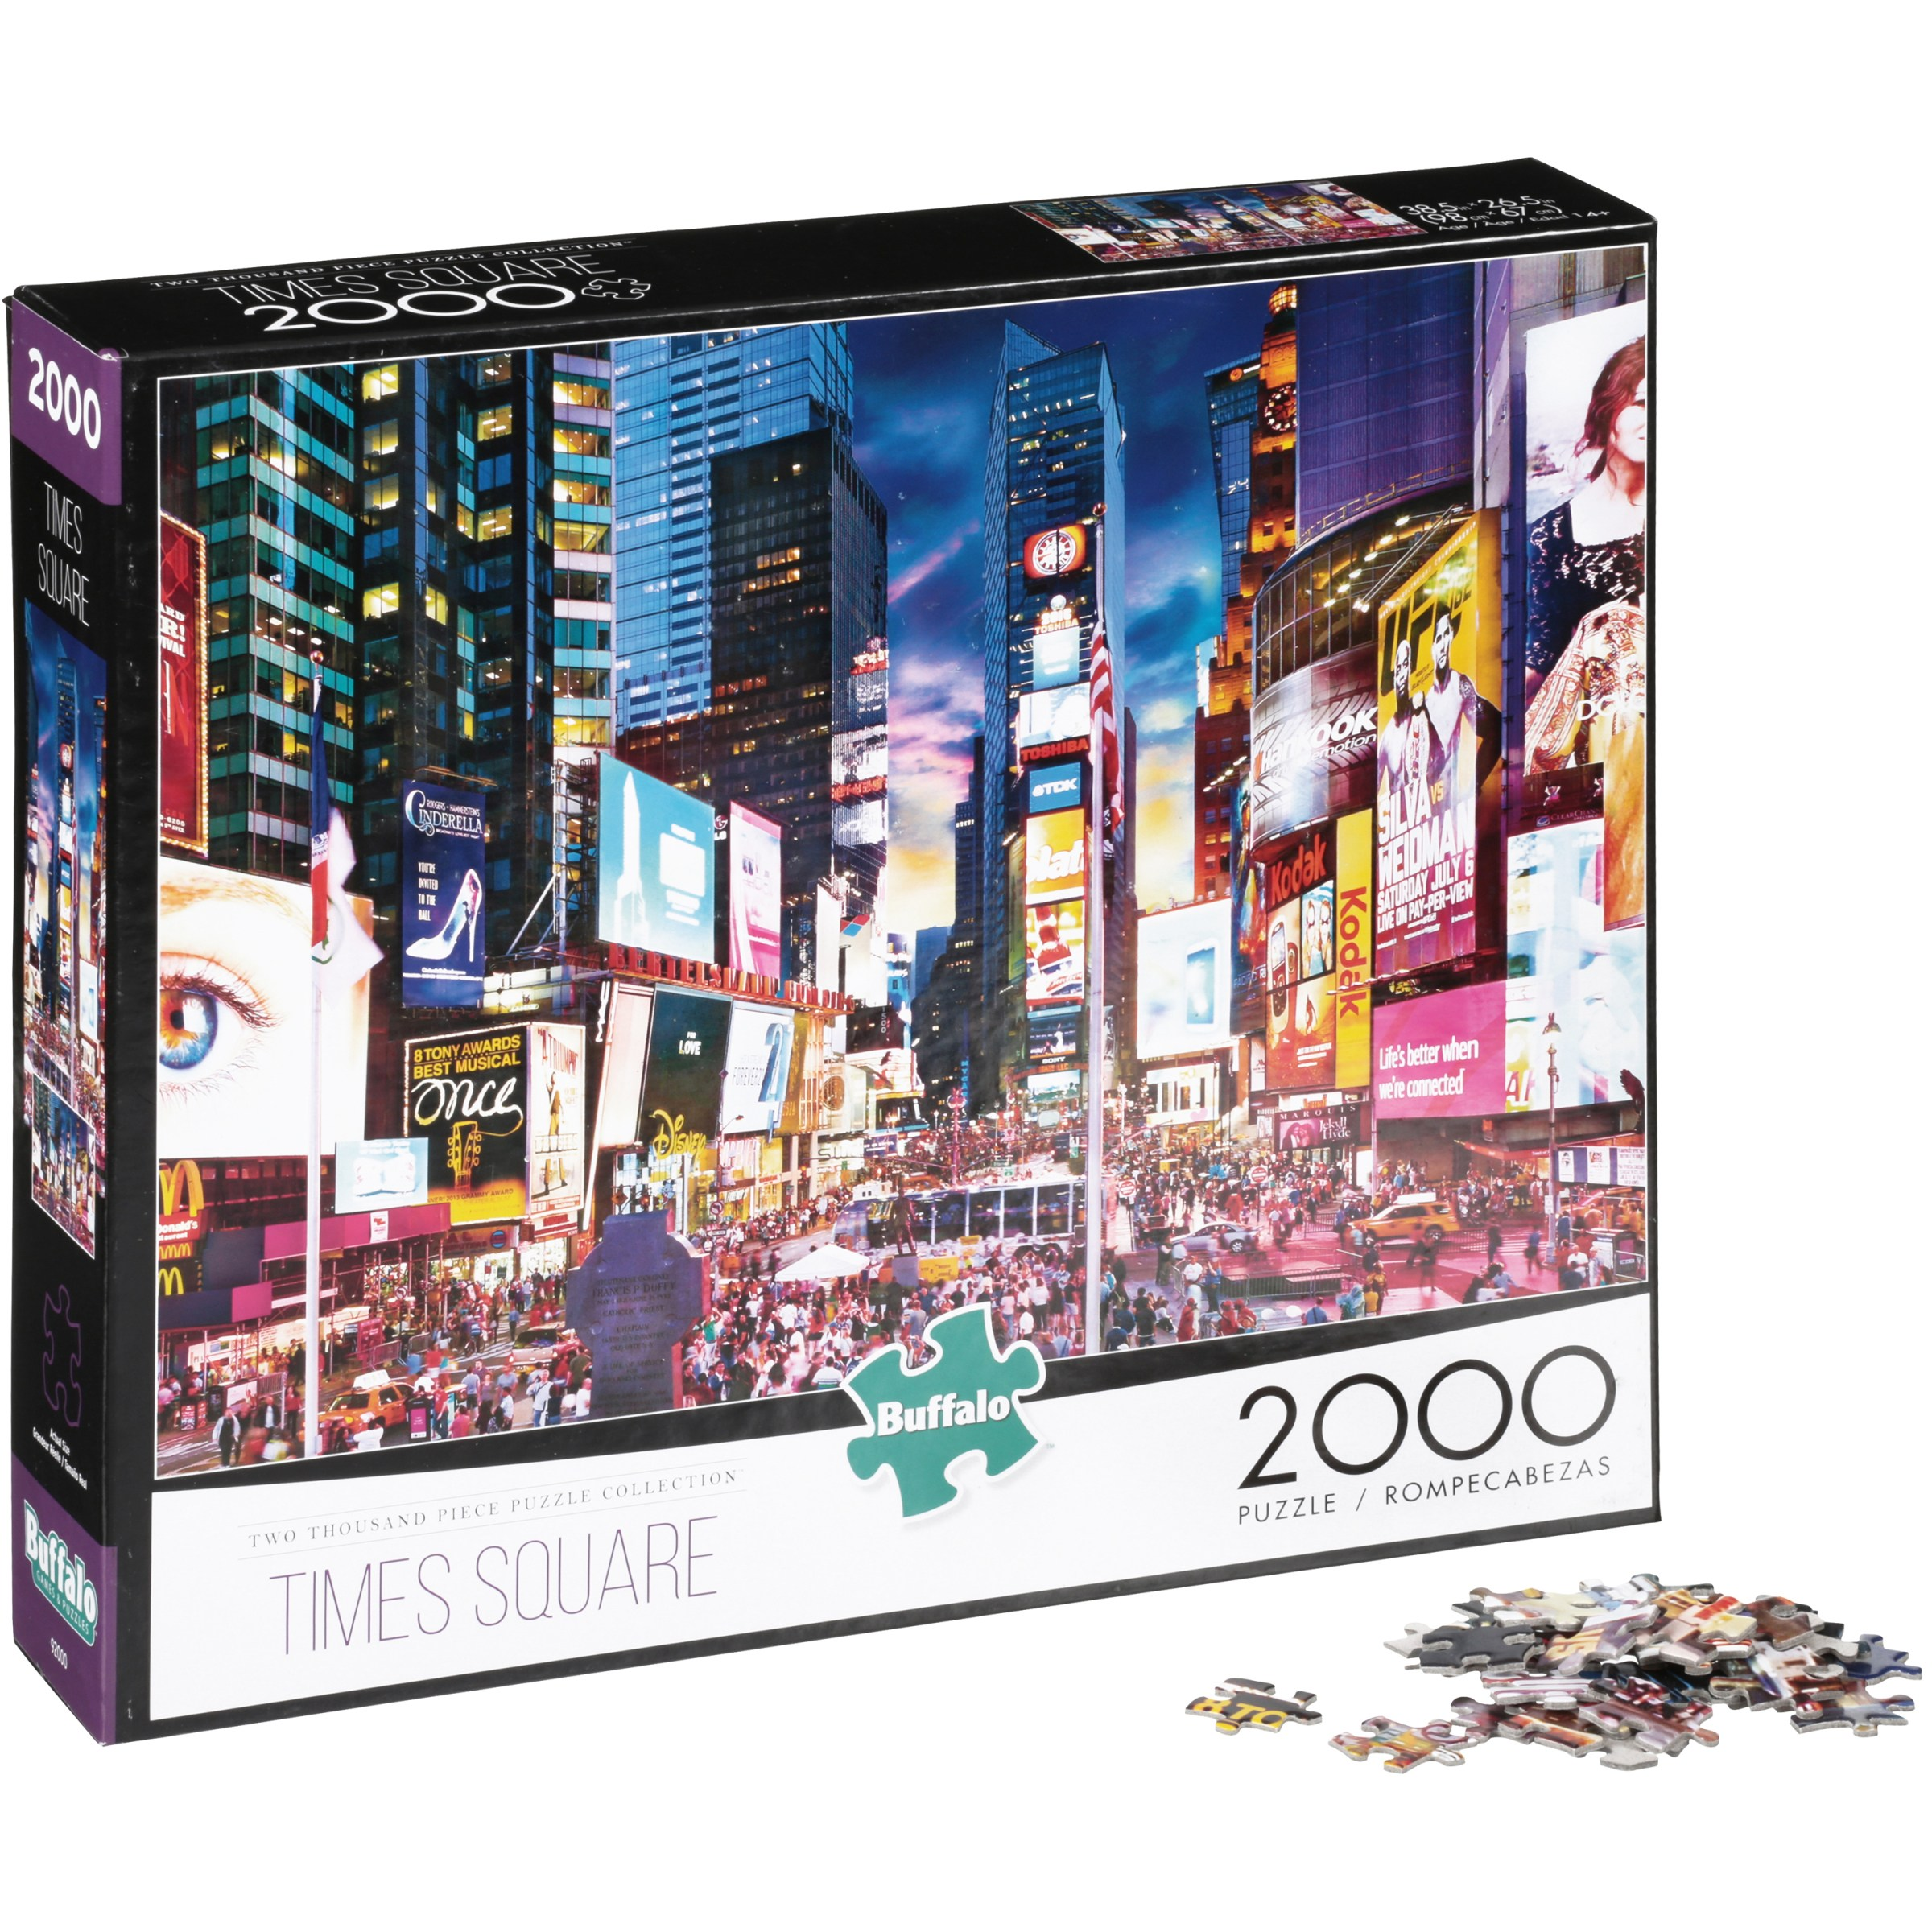 Buffalo Two Thousand Piece Collection Times Square Puzzle 2000 pc Box by Buffalo Games, Inc.